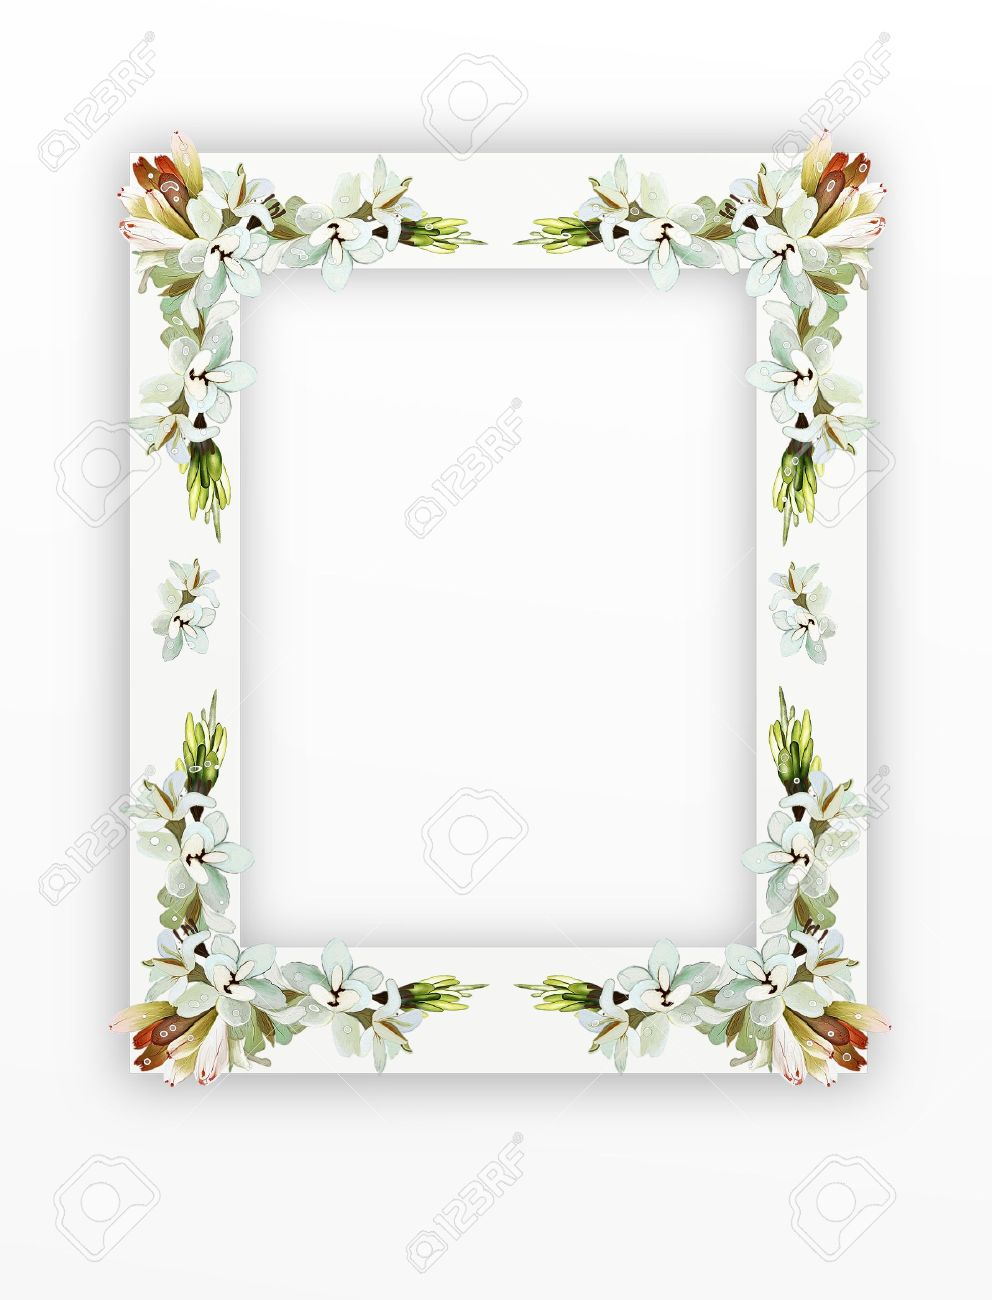 A Beautiful Tuberose Flowers Arranged As A Vertical Frame Isolated ...